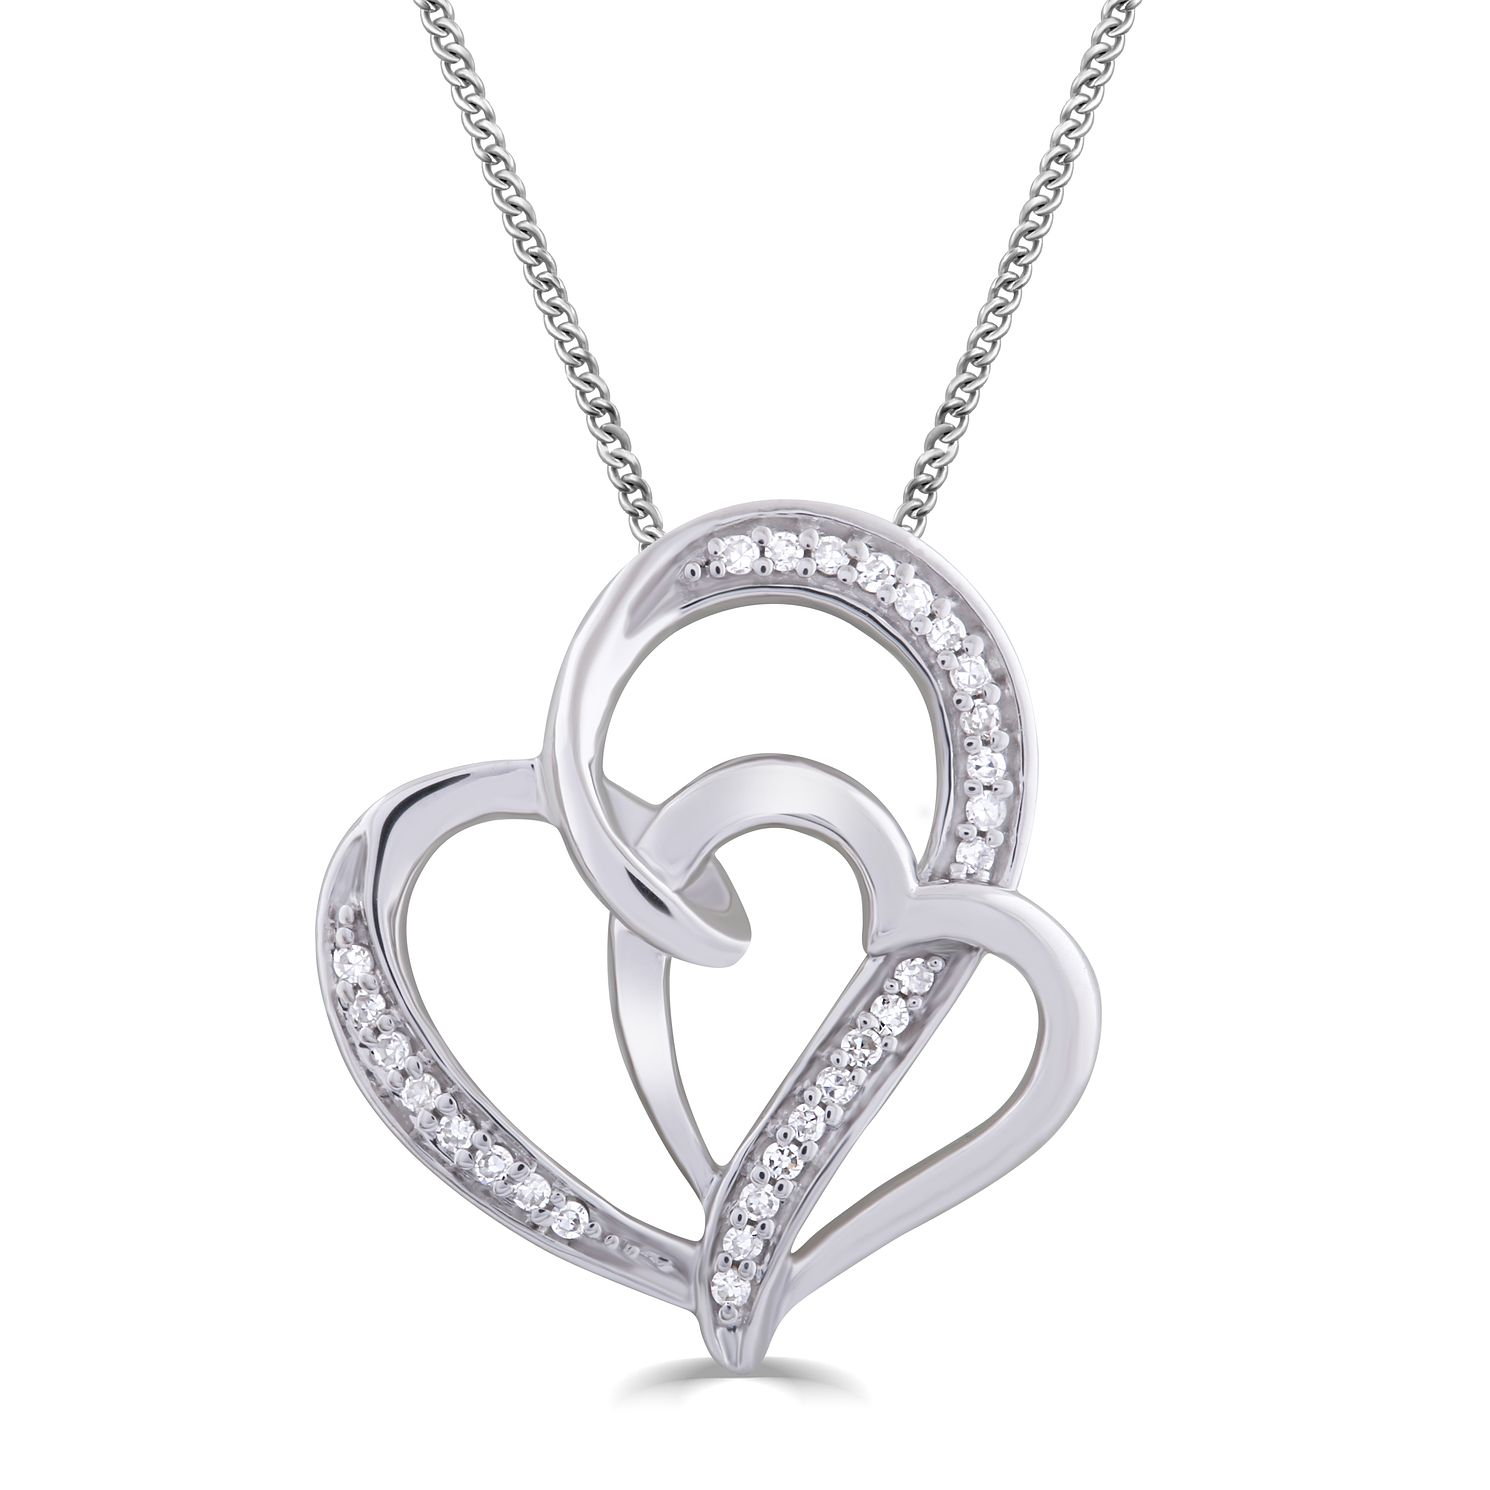 Silver & Diamond Double Heart Entwined Pendant - Product number 5033187